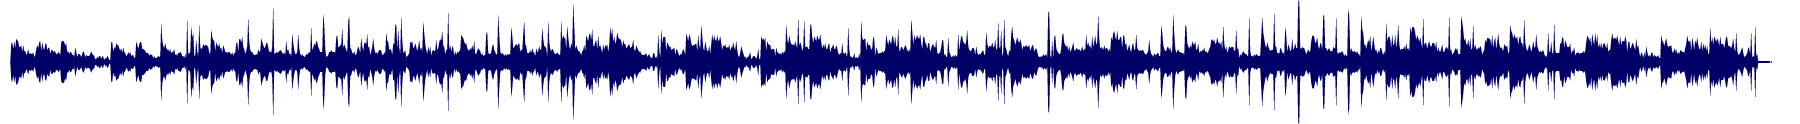 waveform of track #72442